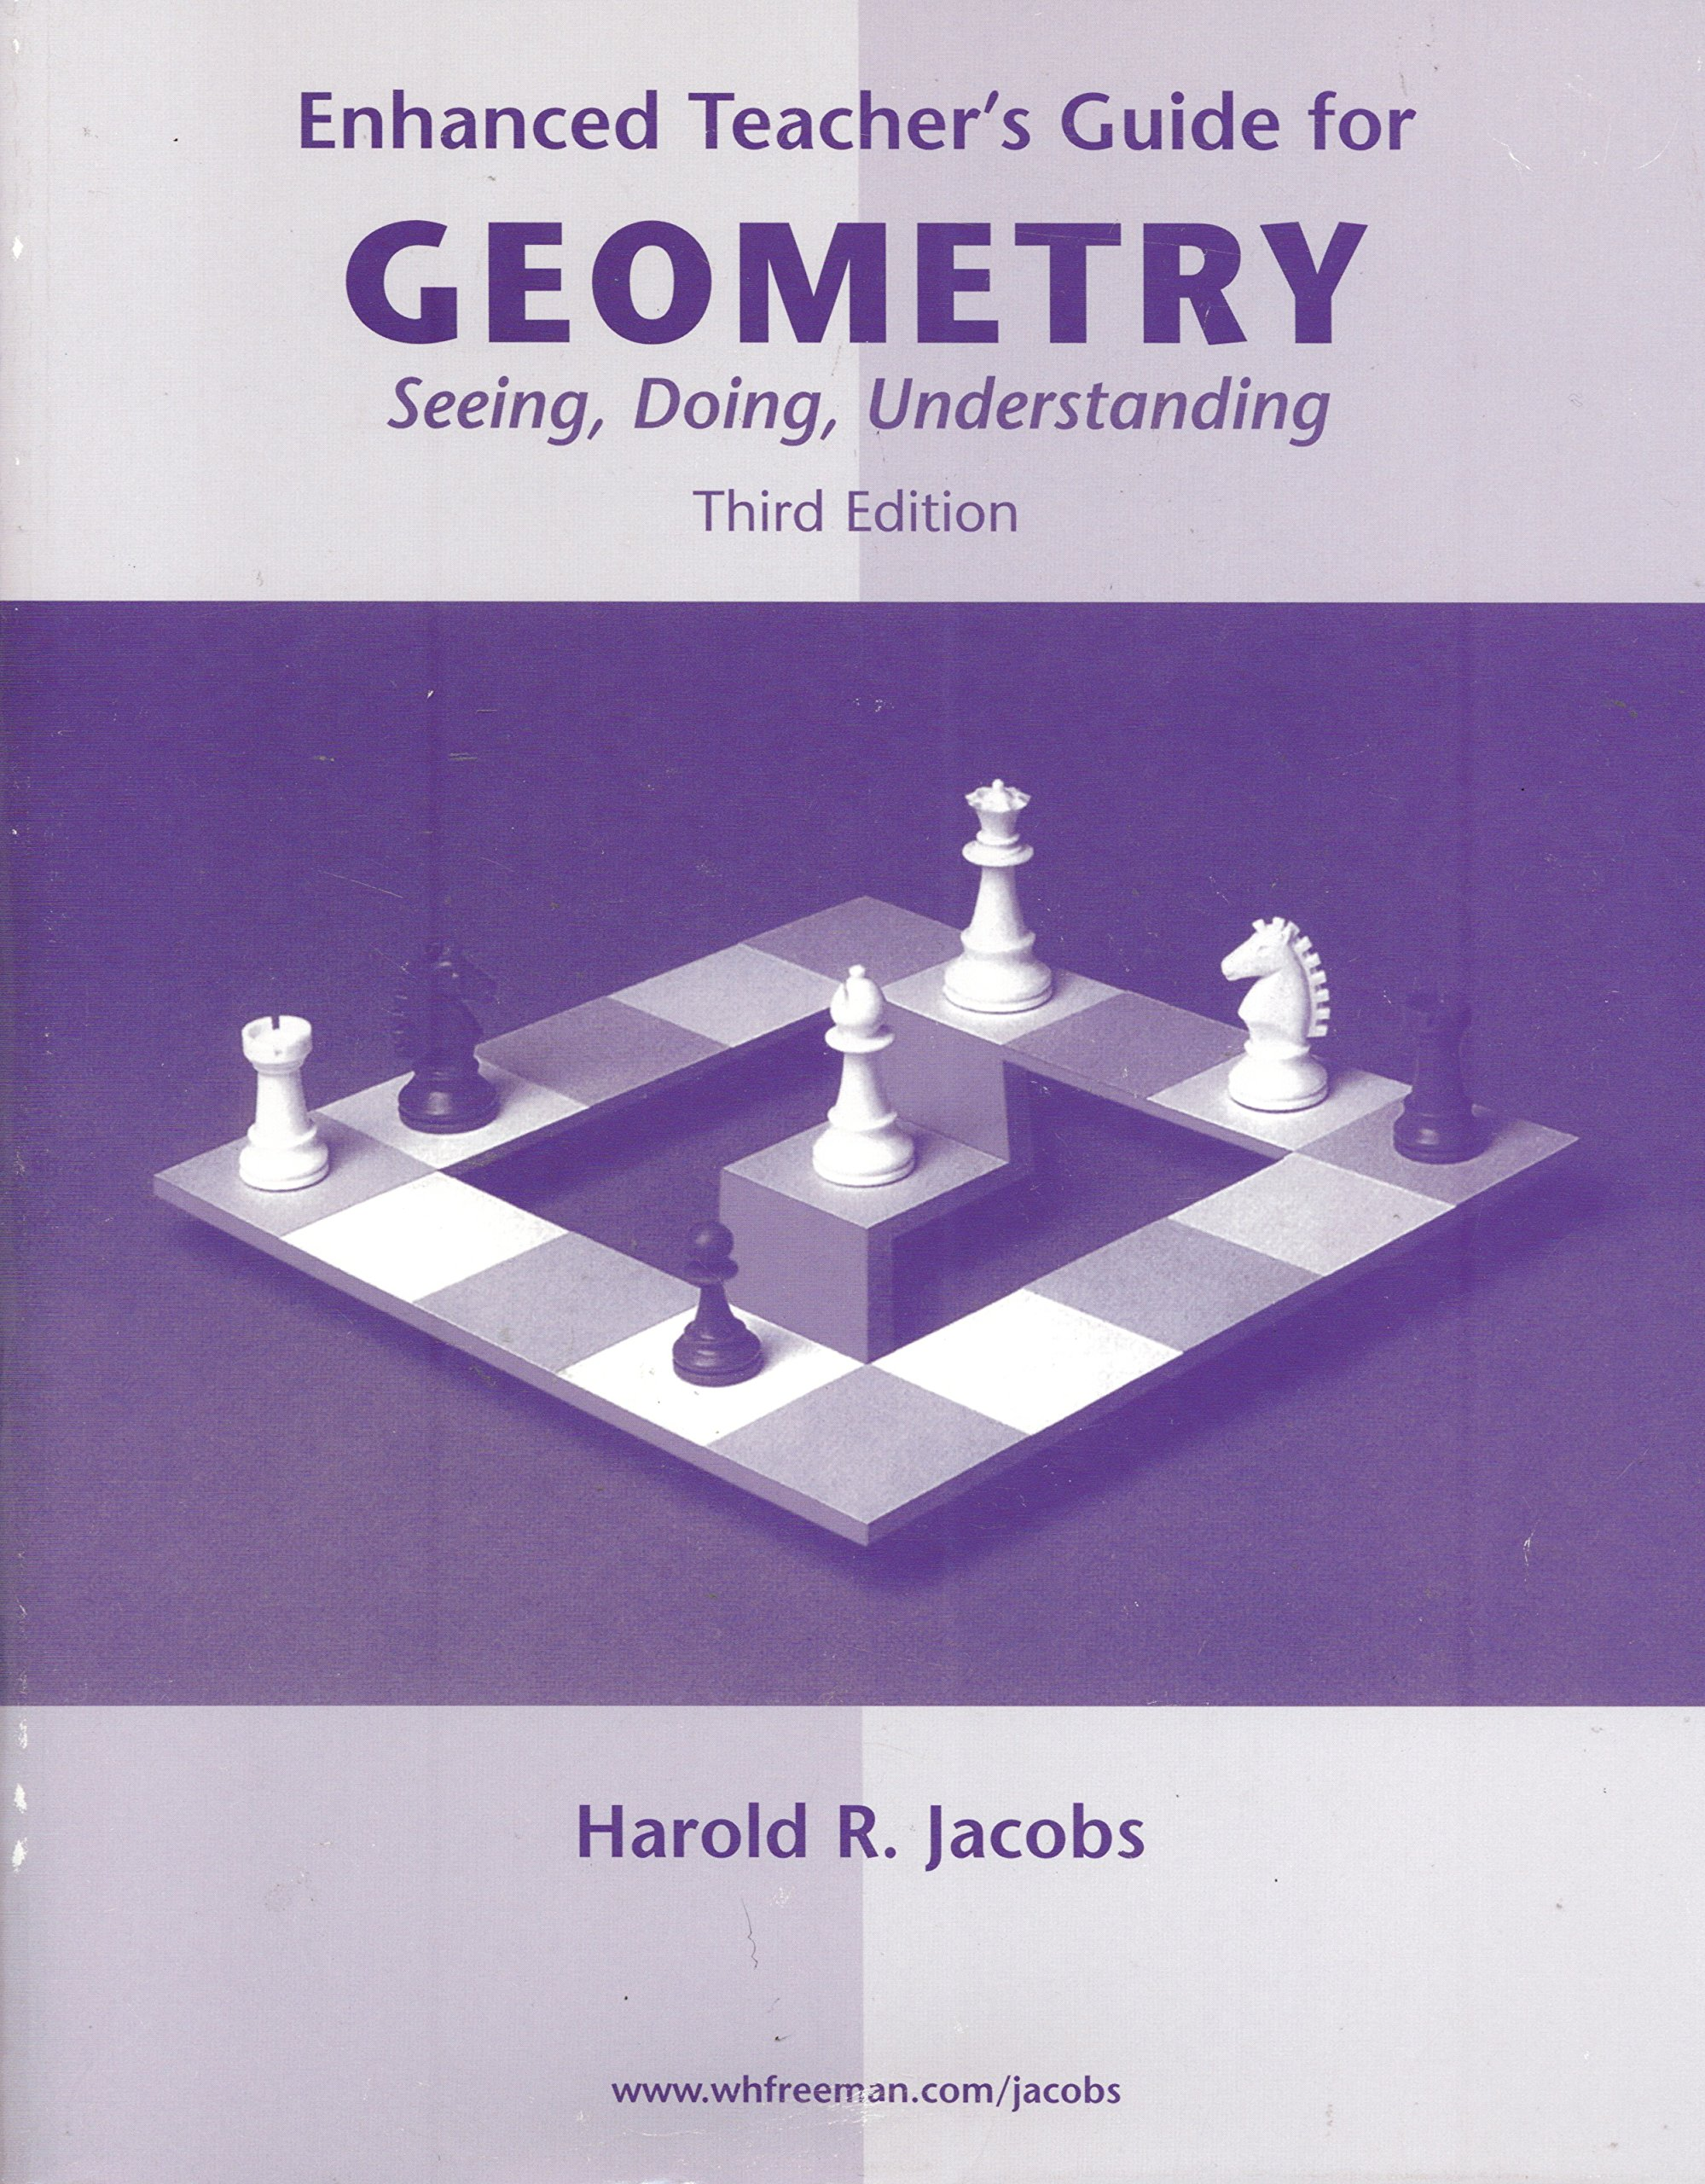 Enhanced Teacher's Guide for Geometry: Seeing, Doing, Understanding, 3rd  Edition: Harold R. Jacobs: 9780716756071: Amazon.com: Books